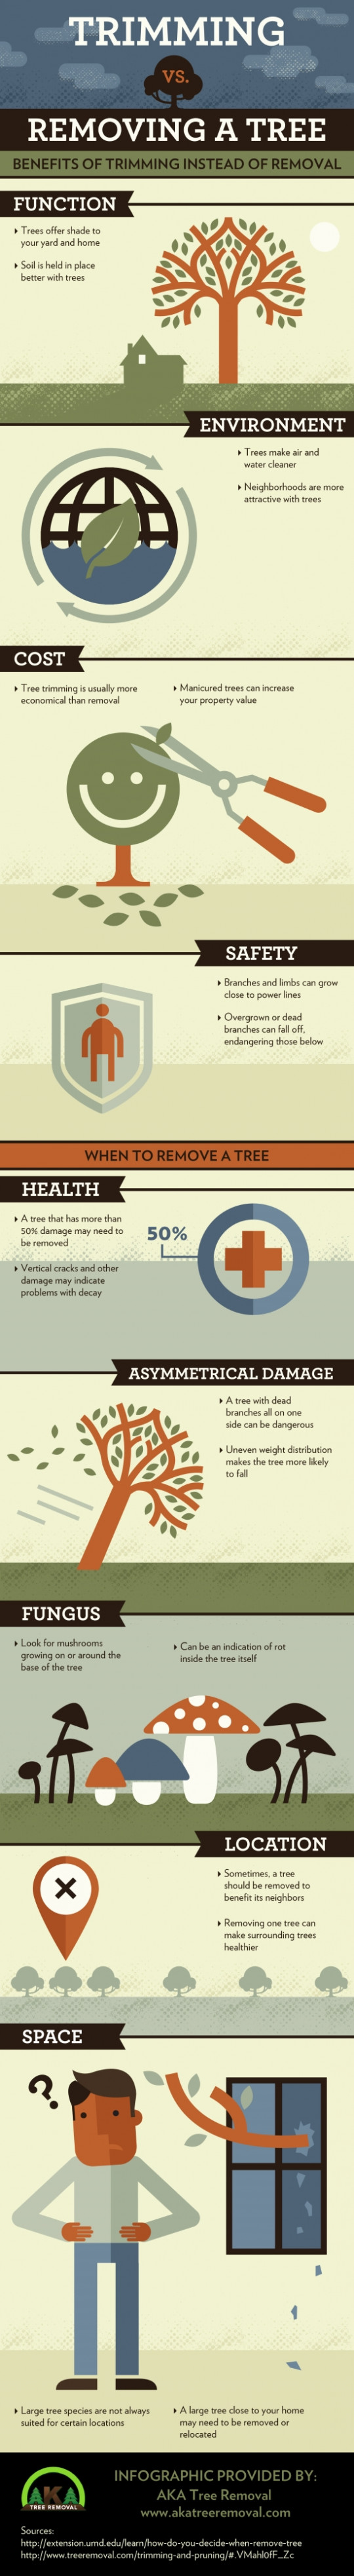 Trimming vs. Removing a Tree